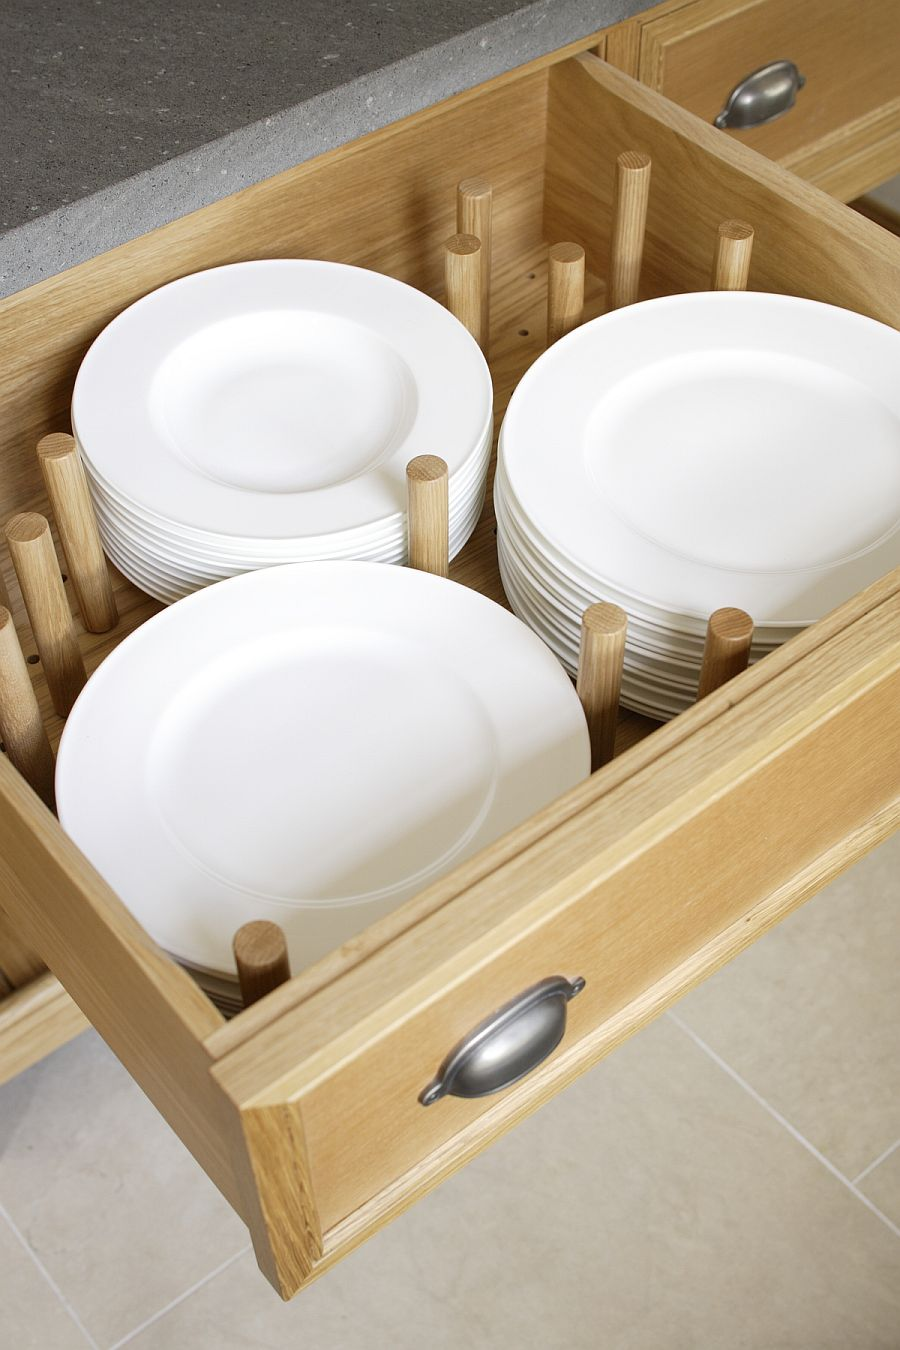 Plate drawer in the kitchen island that can be tucked away with ease